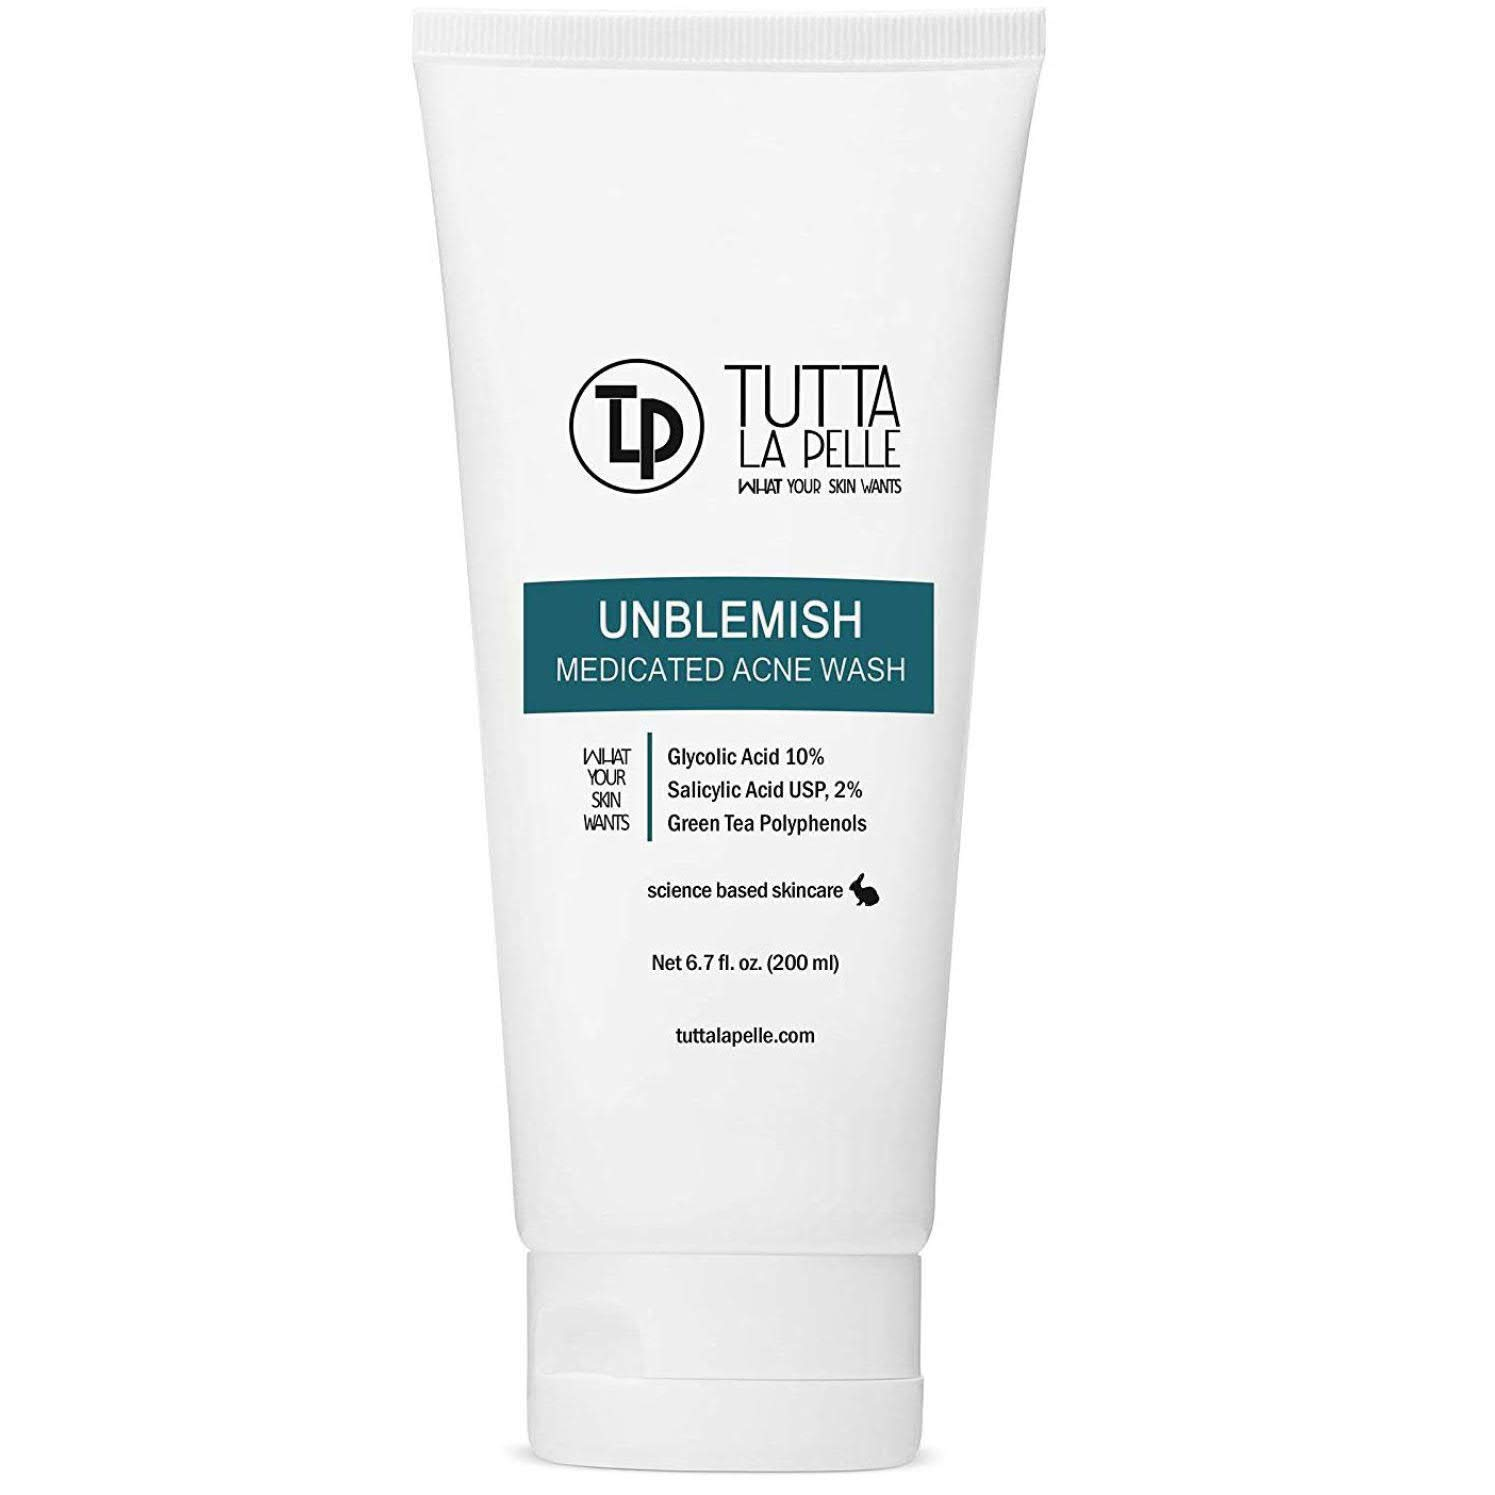 Exfoliating Face Wash Glycolic Acid 2% Salicylic Acid 2% - Medicated Unblemish Cleanser AHA BHA Acne Wash, with calming green tea, oil free, Helps for Acne, Oiliness, Blackheads, Cystic Acne 6.7 oz: Beauty